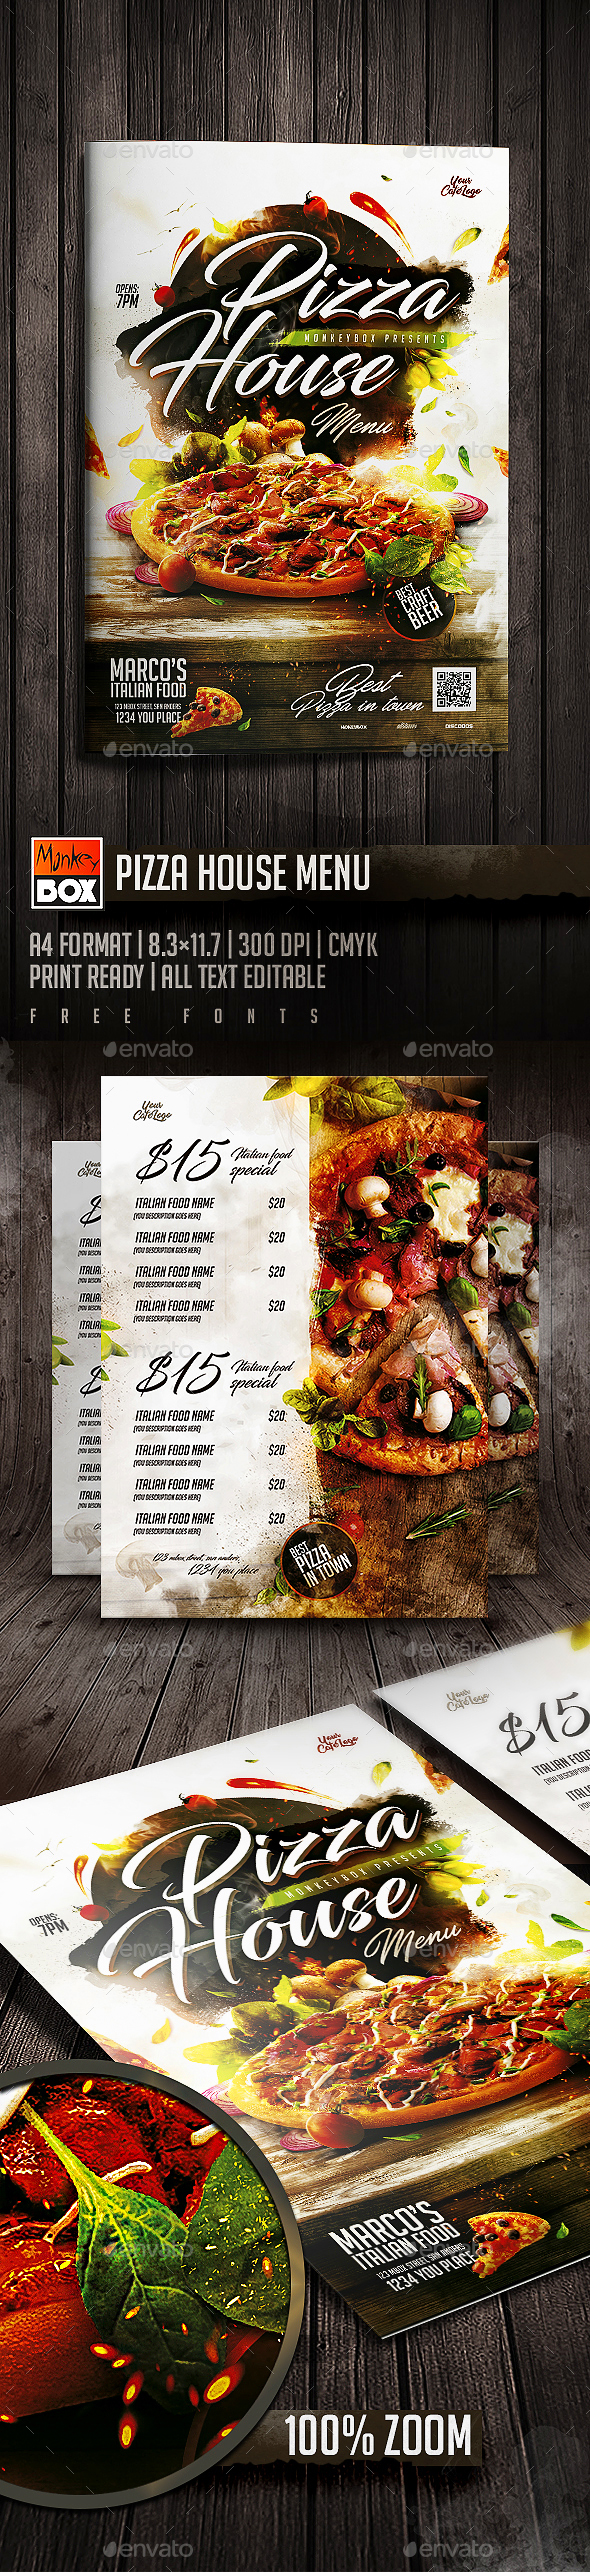 Pizza House Menu